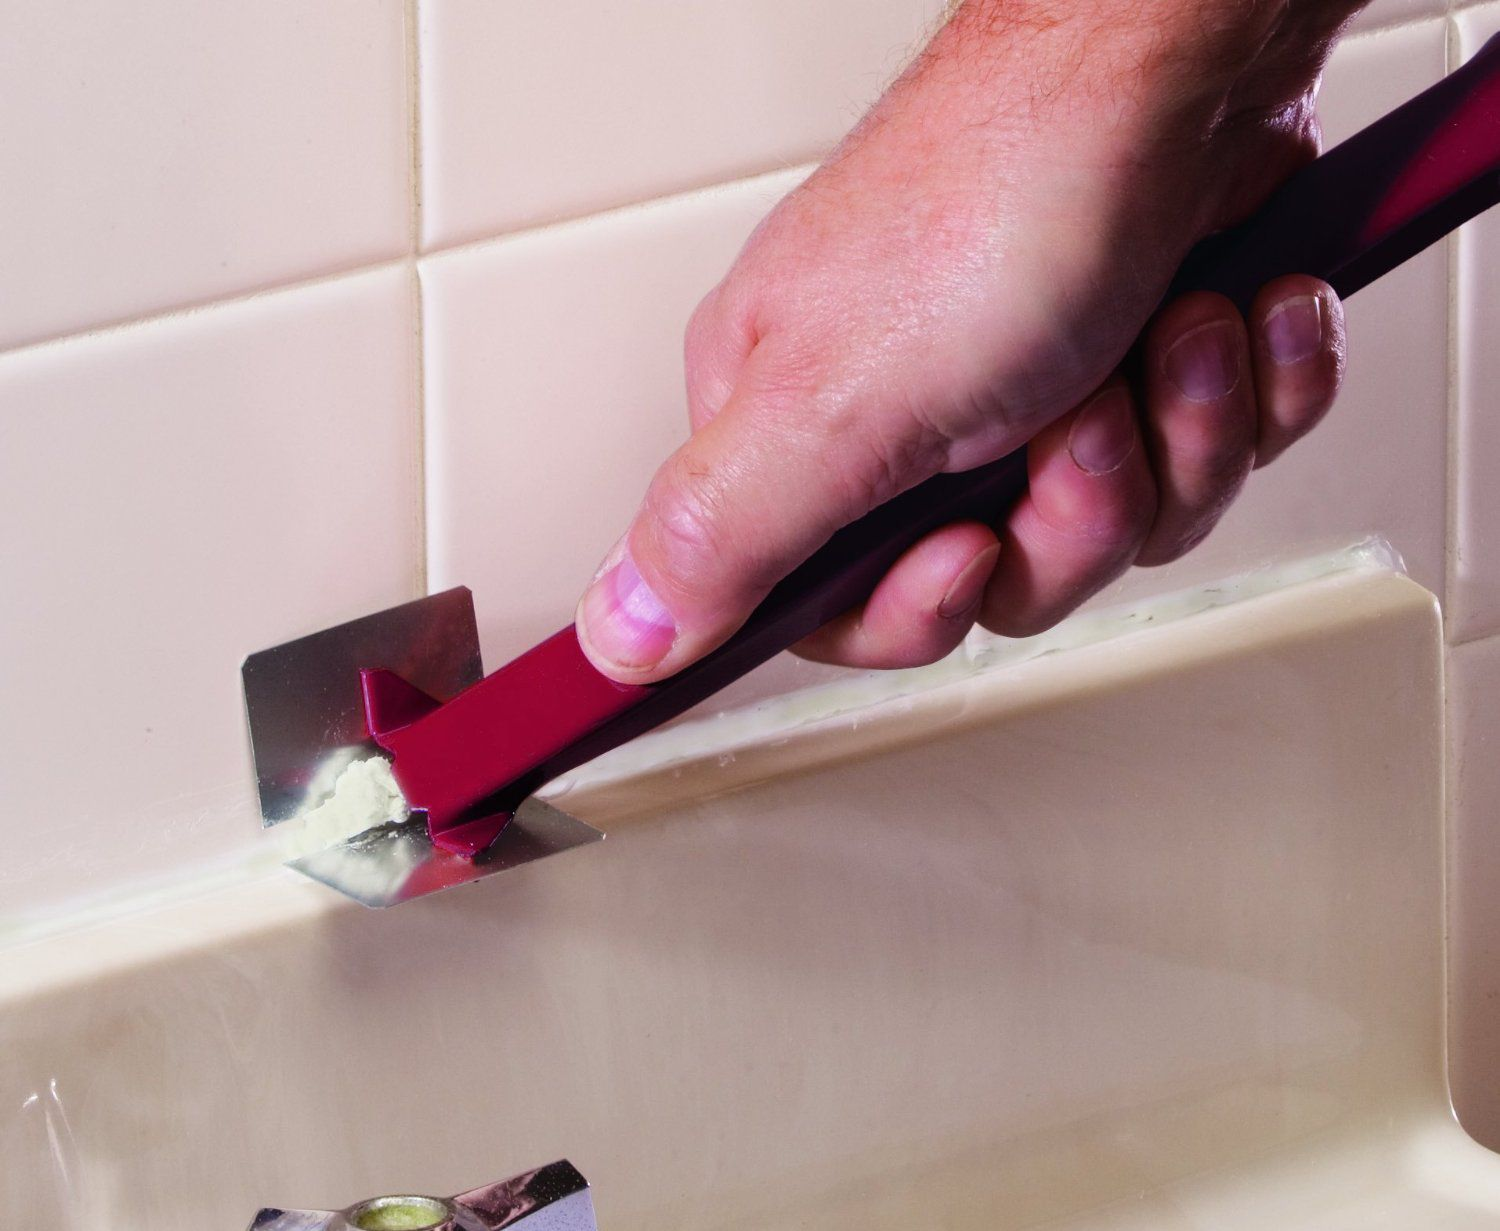 Caulk removal can be done using an inexpensive mechanical tool